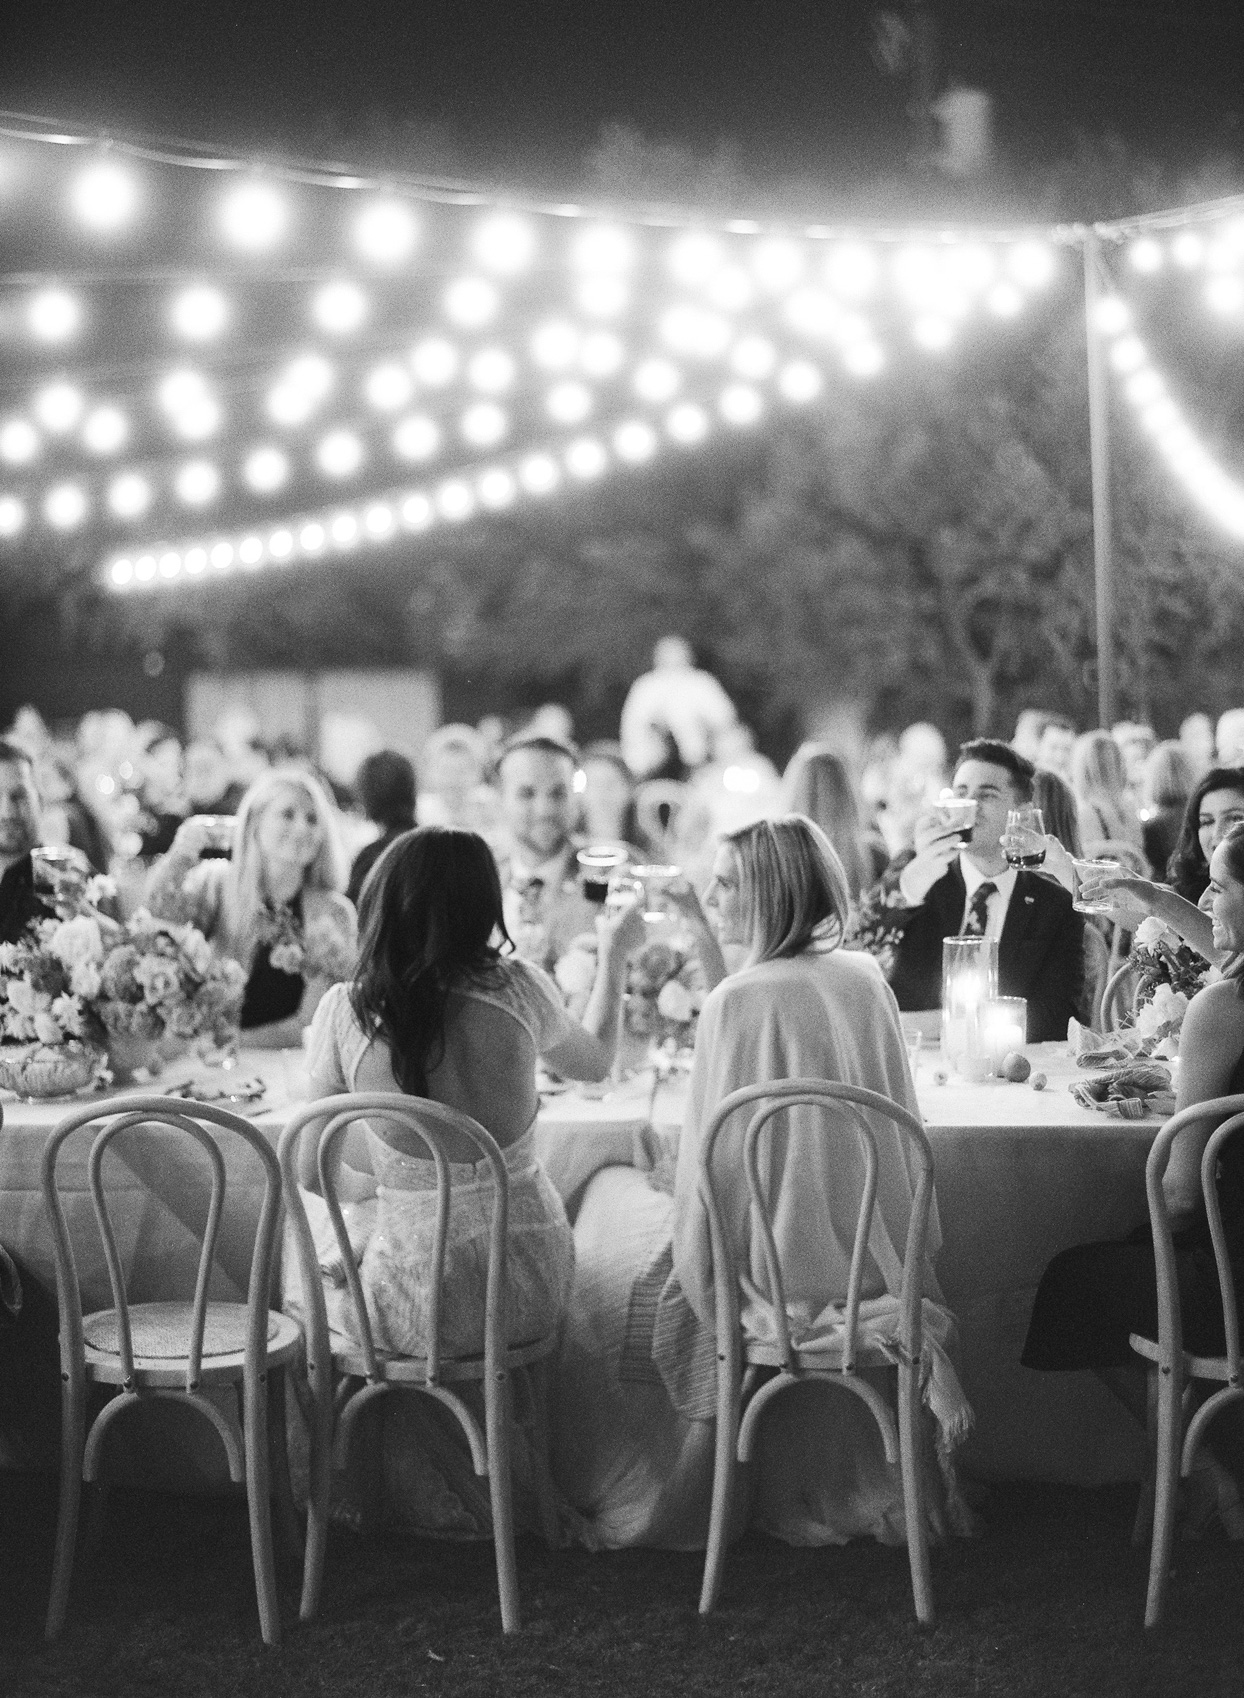 brides and guests toasting at wedding reception dinner